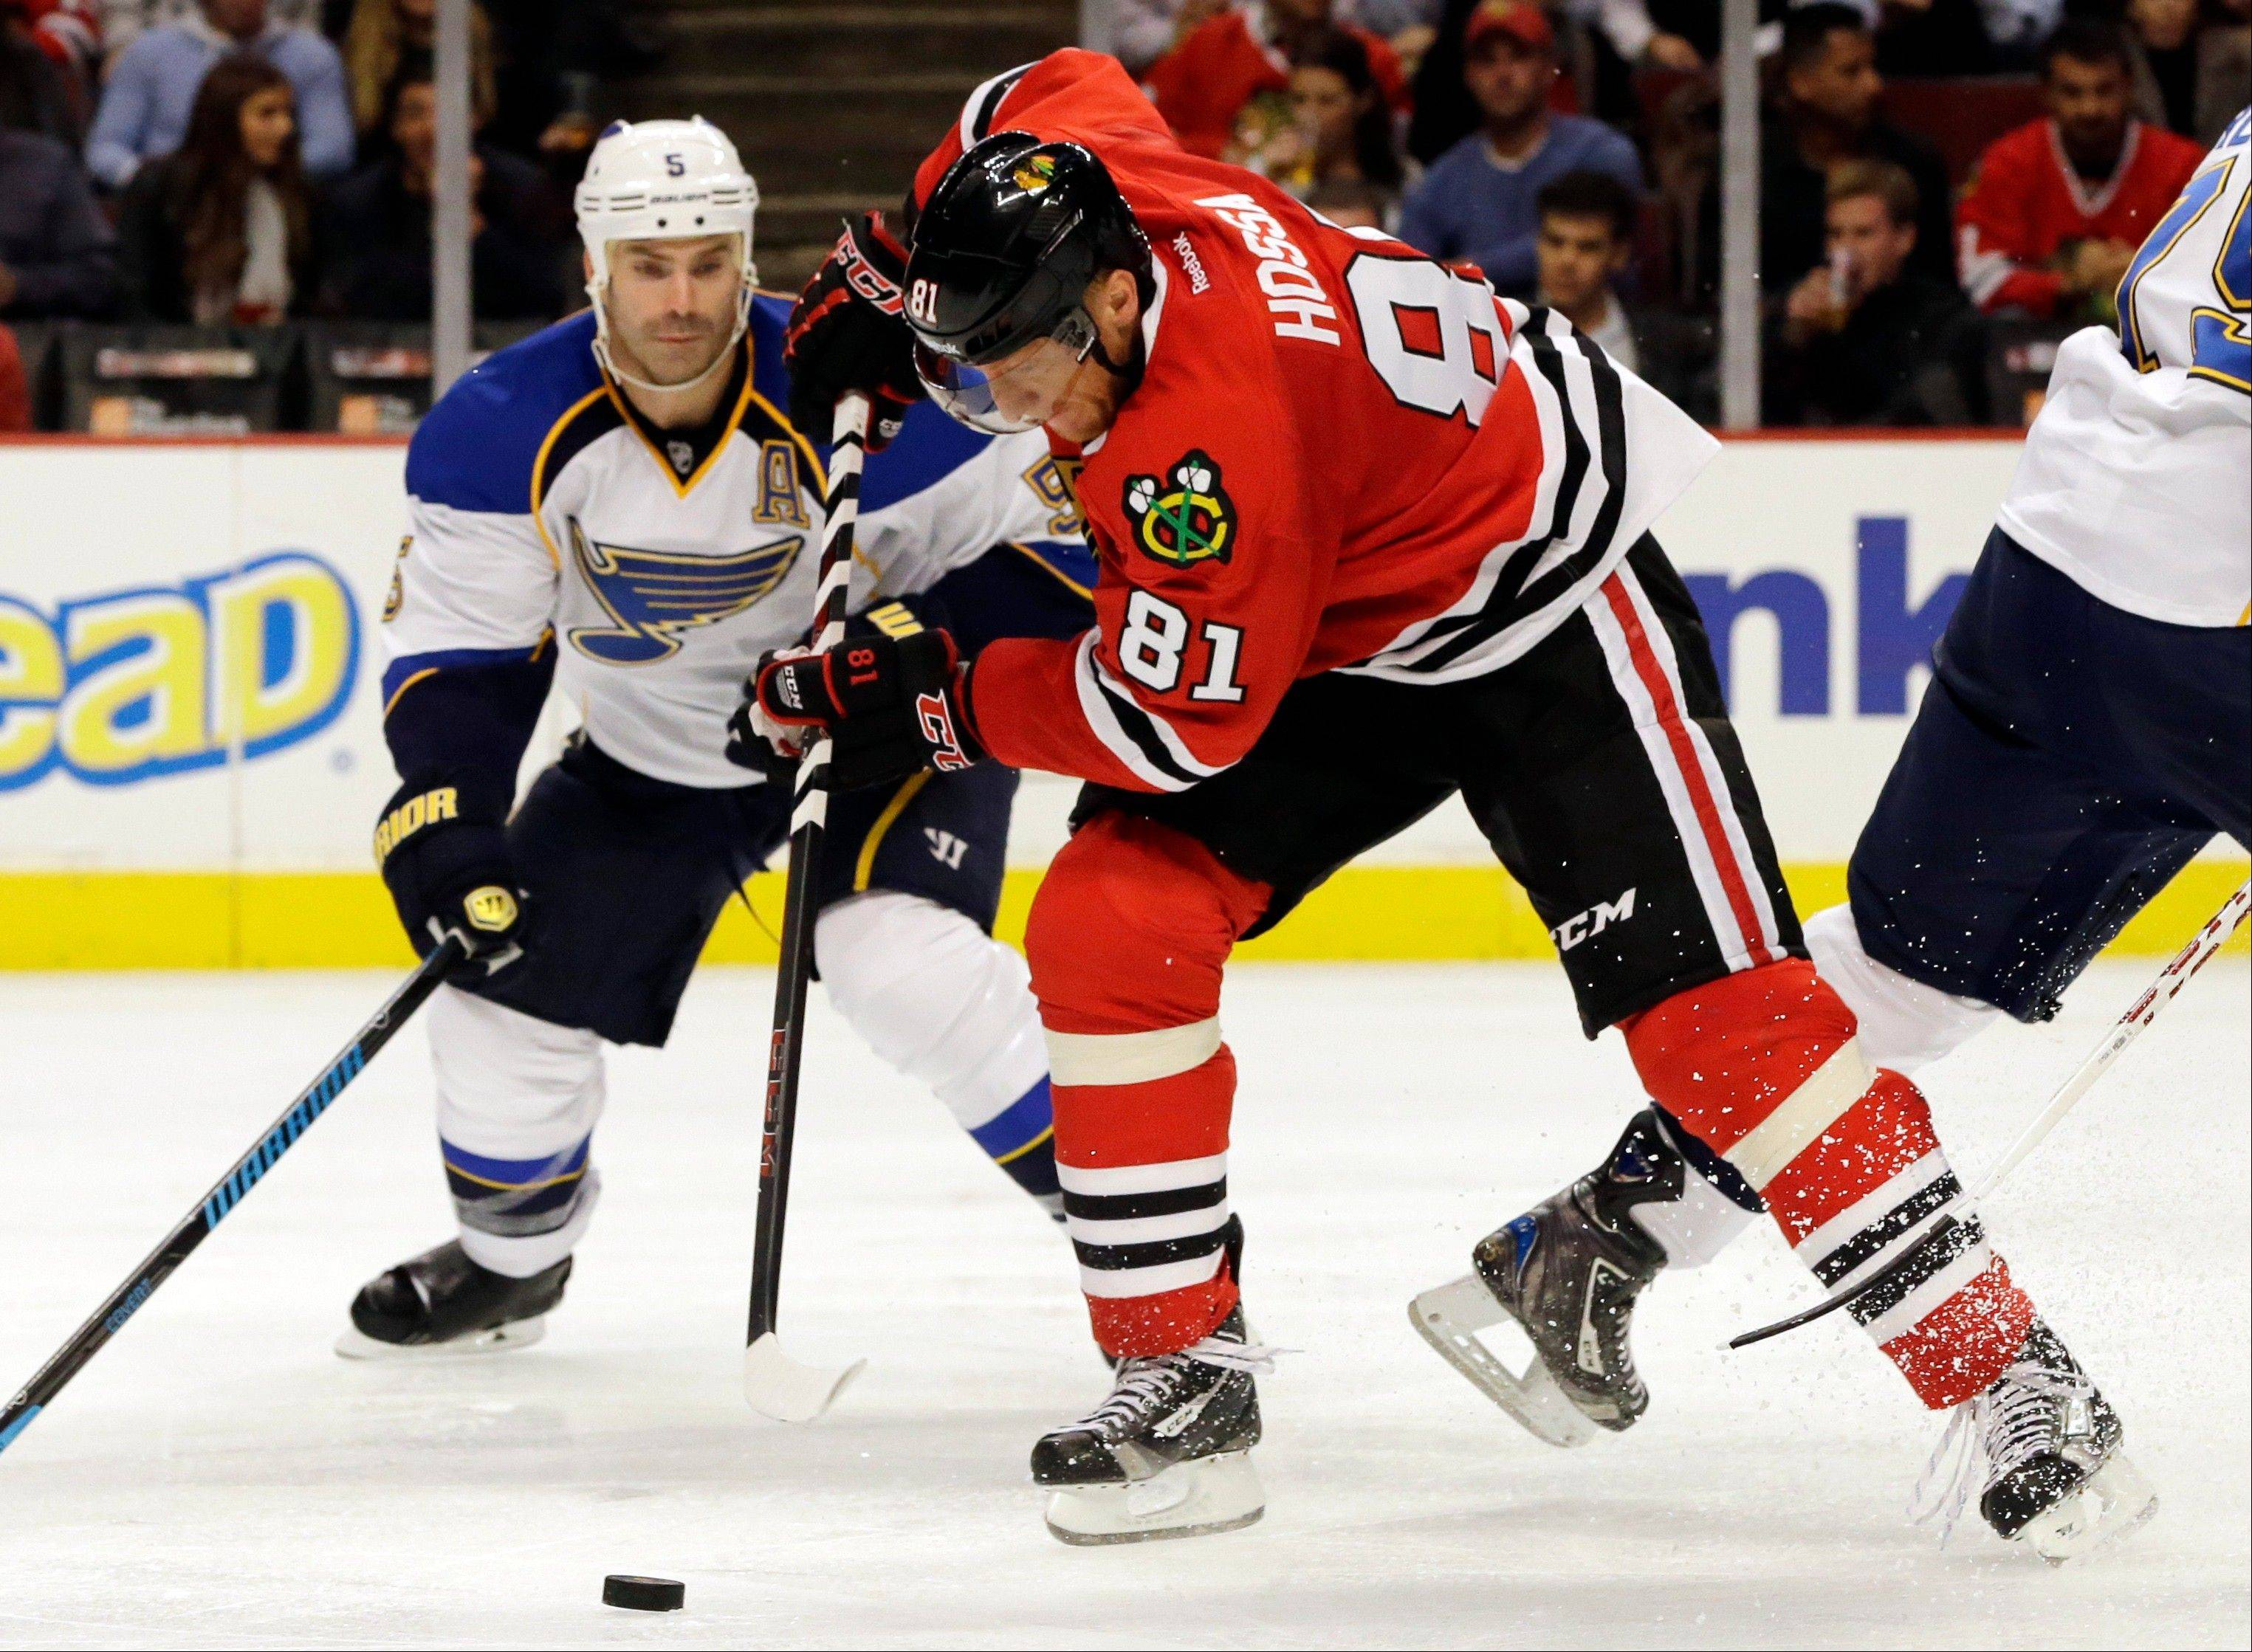 Chicago Blackhawks' Marian Hossa (81) controls the puck during the second period of an NHL hockey game against the St. Louis Blues in Chicago, Thursday, Oct. 17, 2013. (AP Photo/Nam Y. Huh)